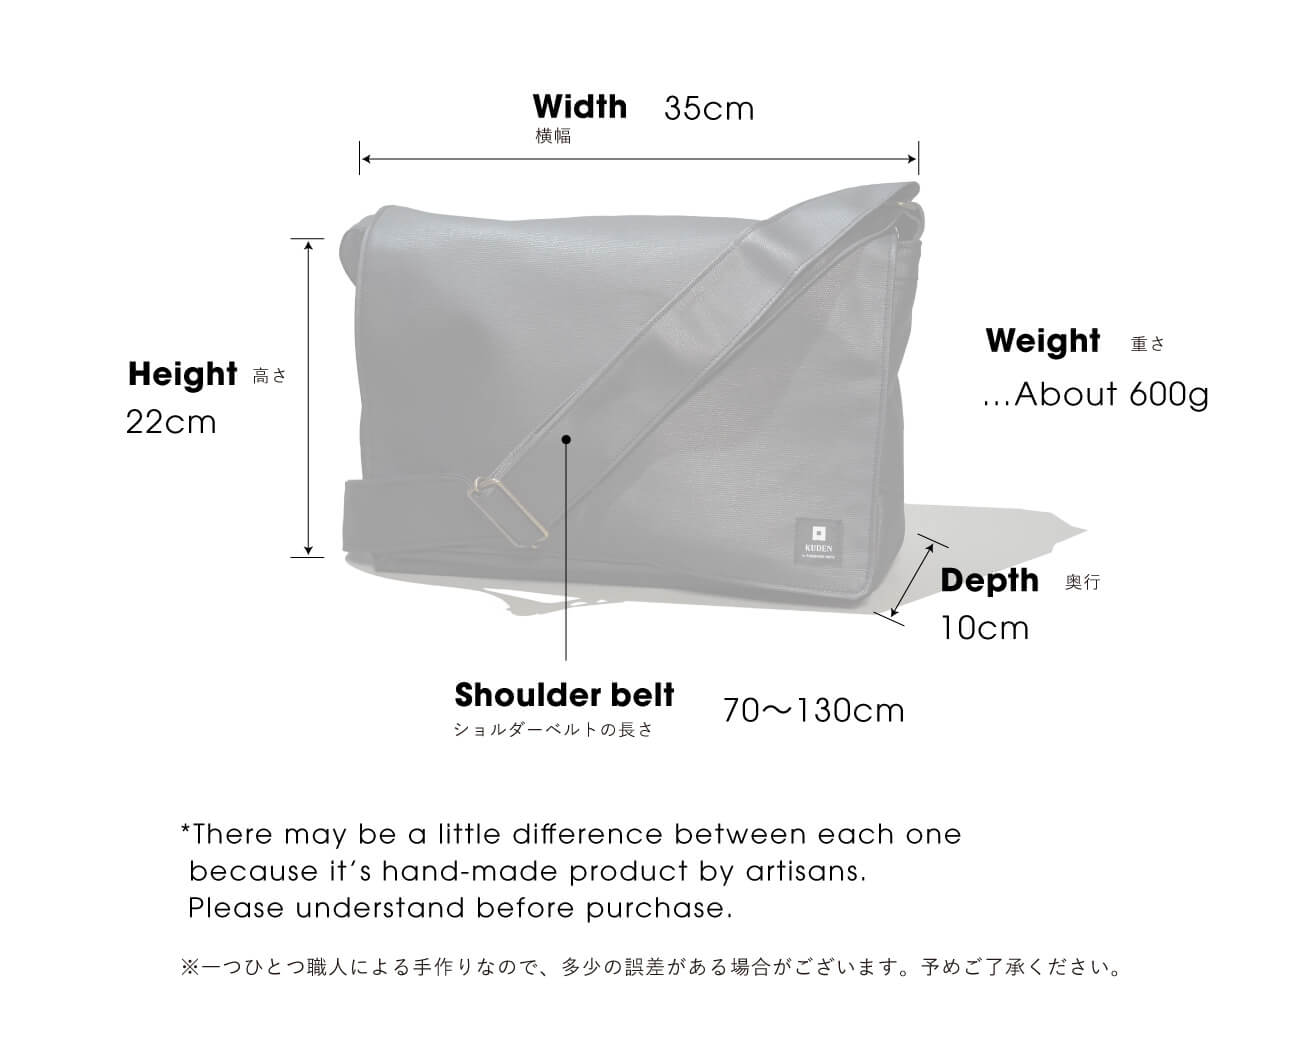 Size chart of 雑嚢 Multi Shoulder Bag from KUDEN by TAKAHIRO SATO